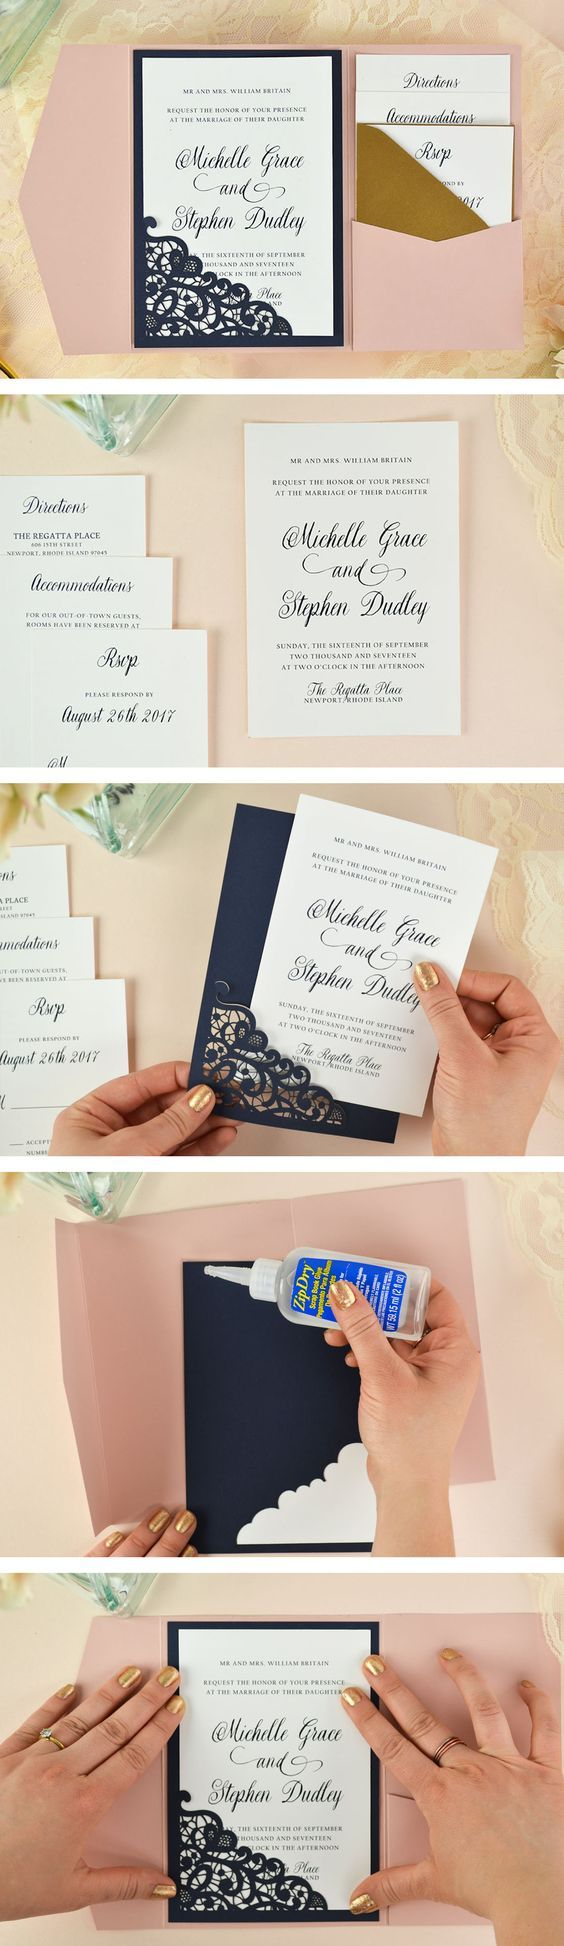 free wedding invitation templates country theme%0A DIY Laser Cut Wedding Invitations   It u    s so easy to DIY this lace laser  pocket invitation